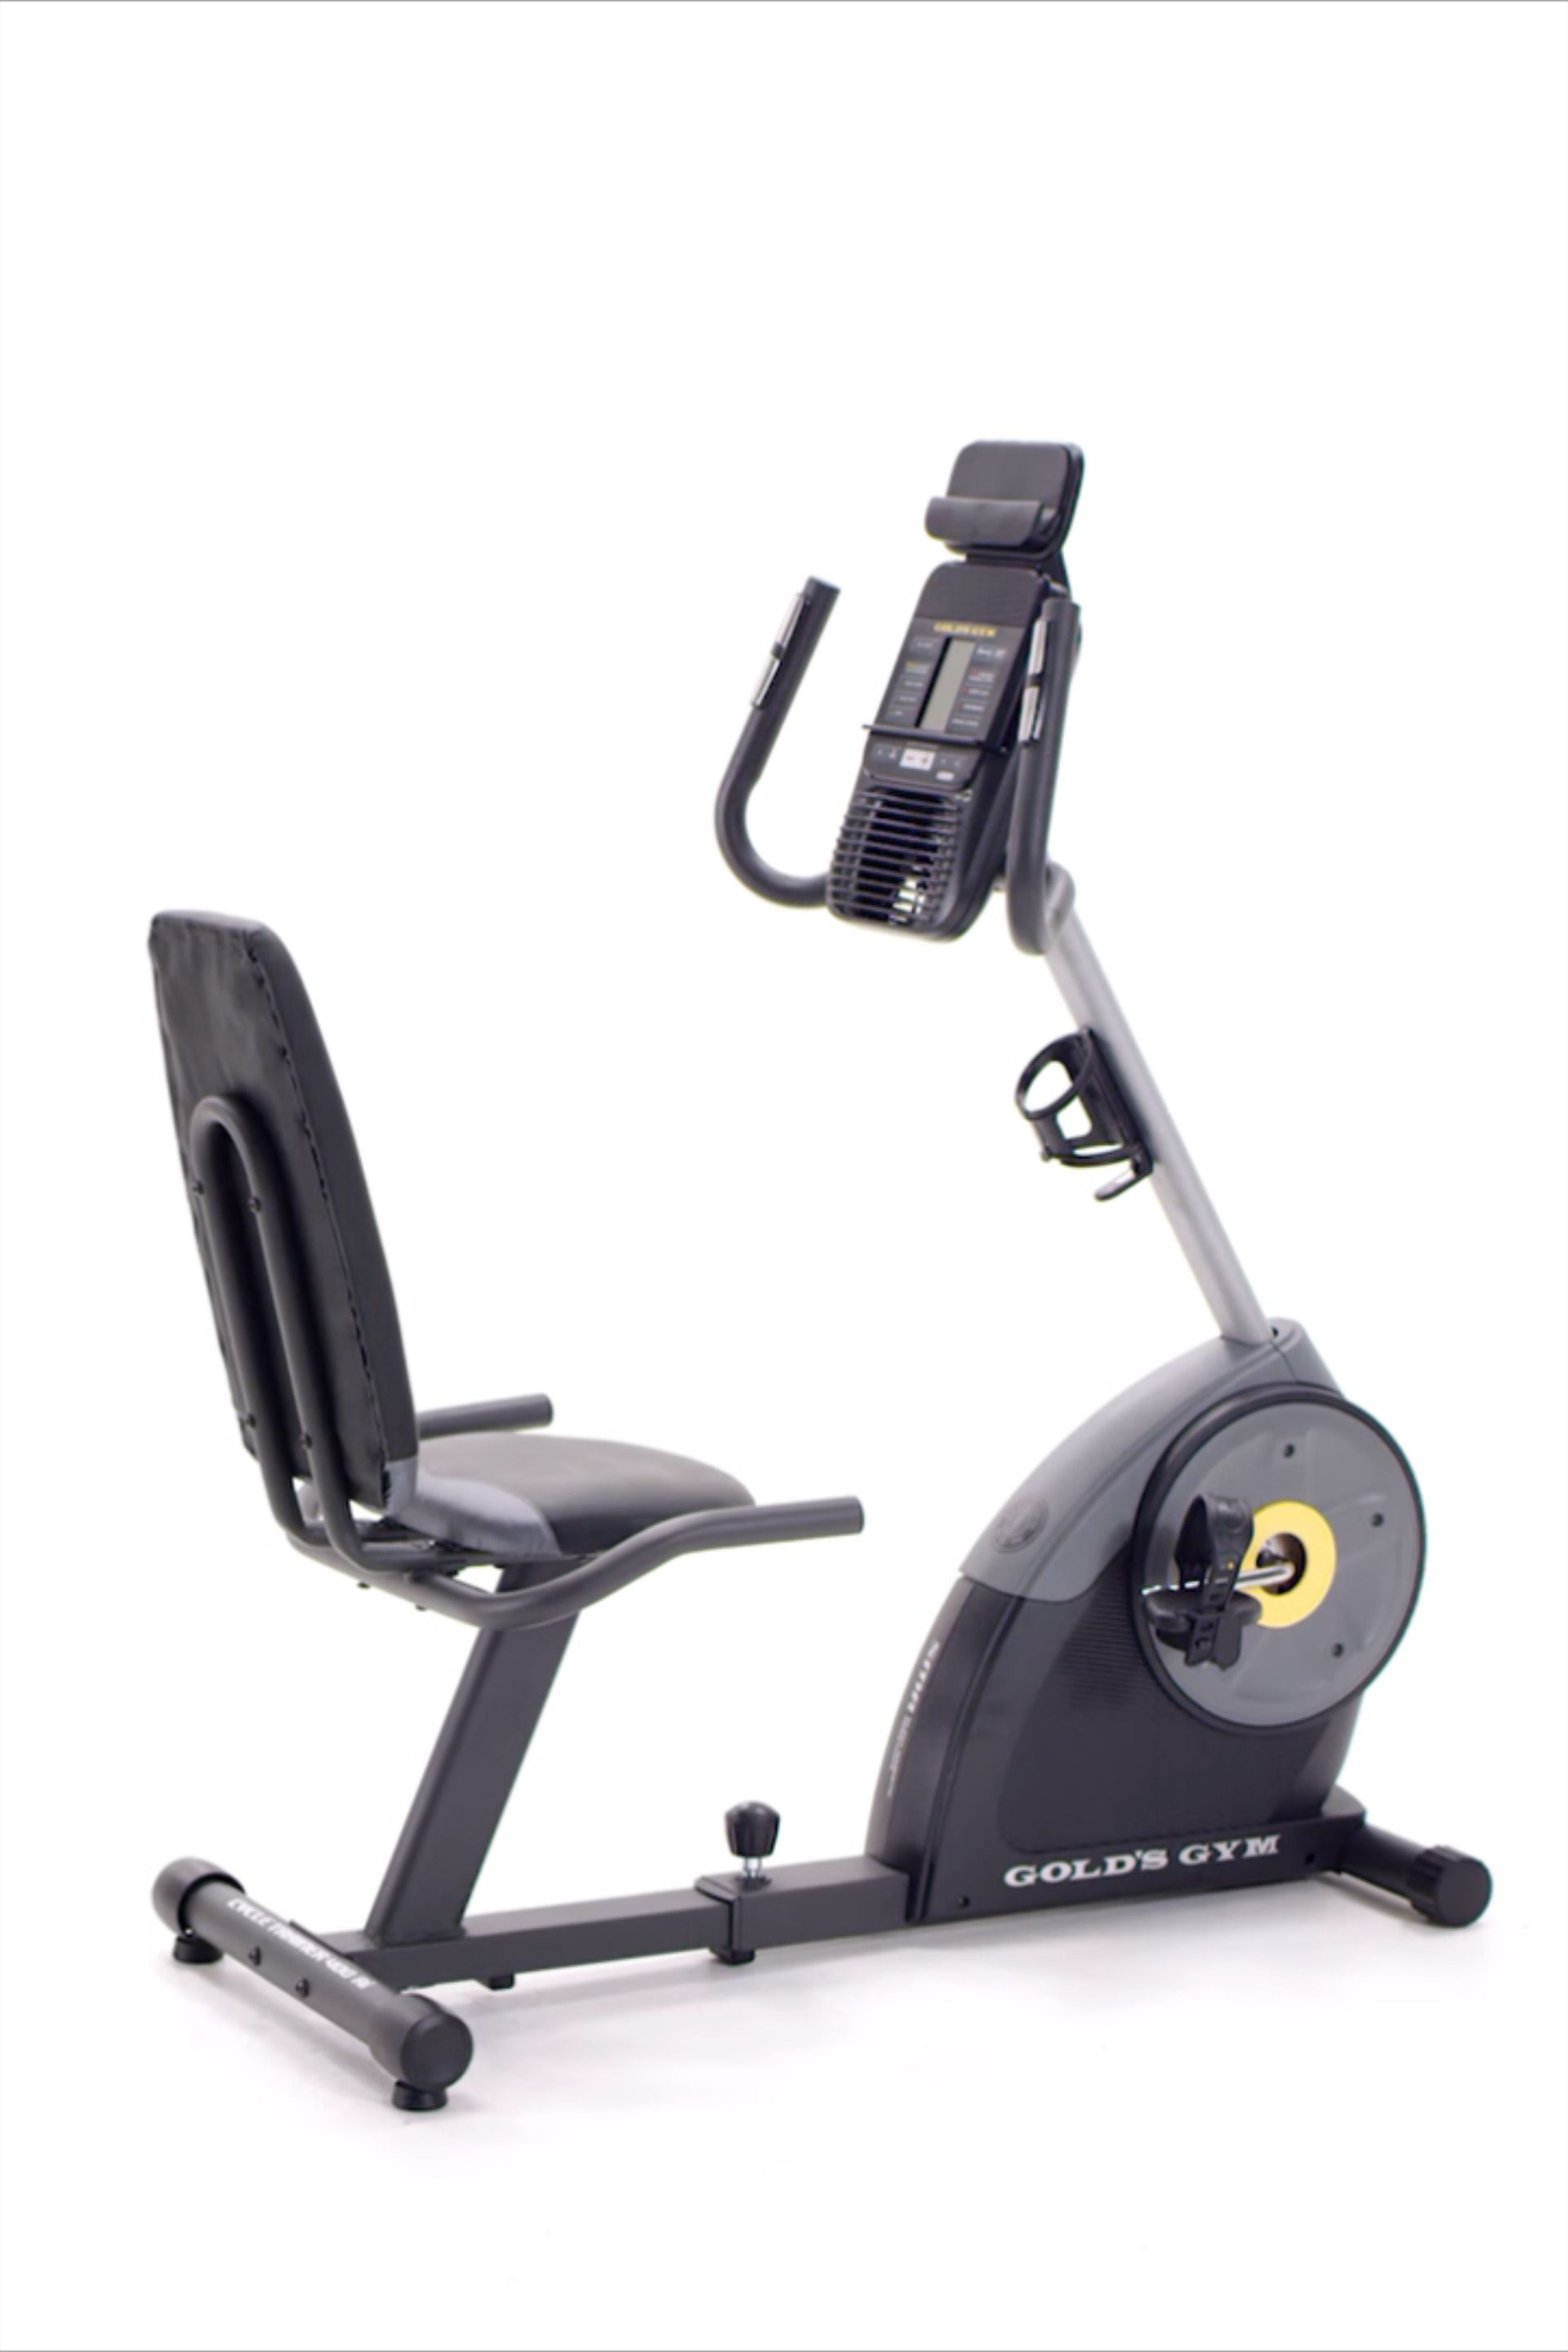 Gold S Gym Ab Wheel Stationary Bicycles At Walmart Ifit Bike